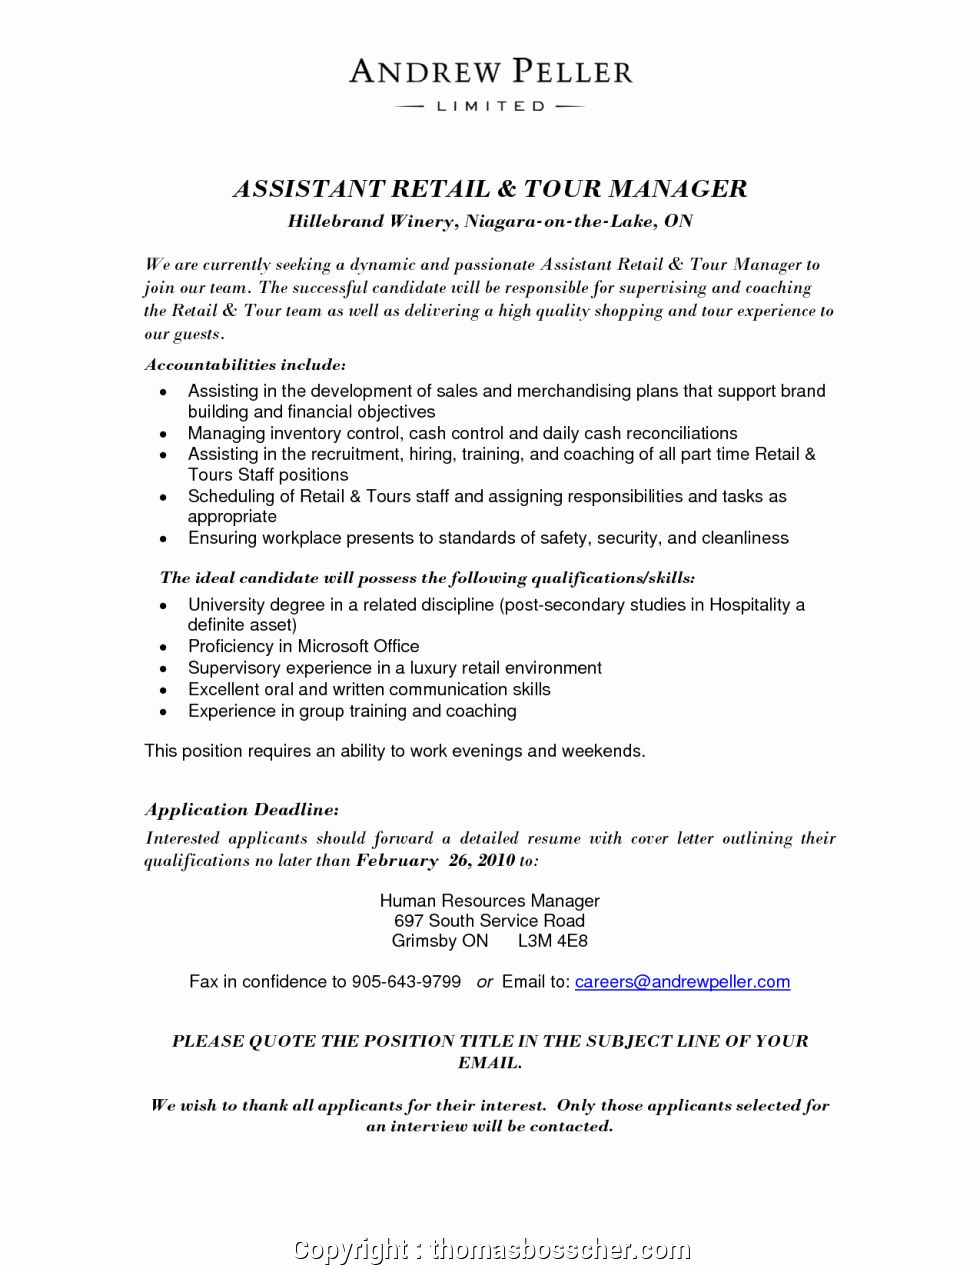 Assistant Manager Resume Description Luxury Professional Assistant Store Manager Responsibilities